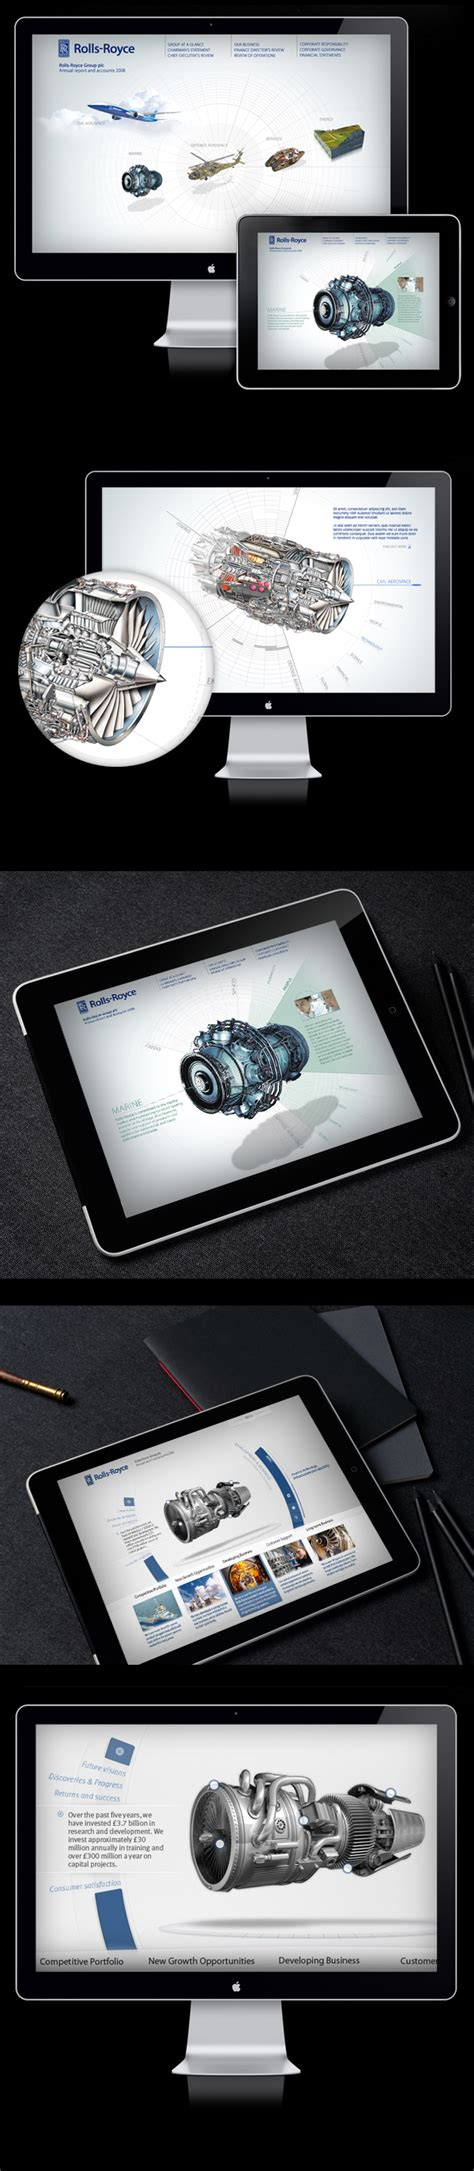 rolls royce annual report on behance